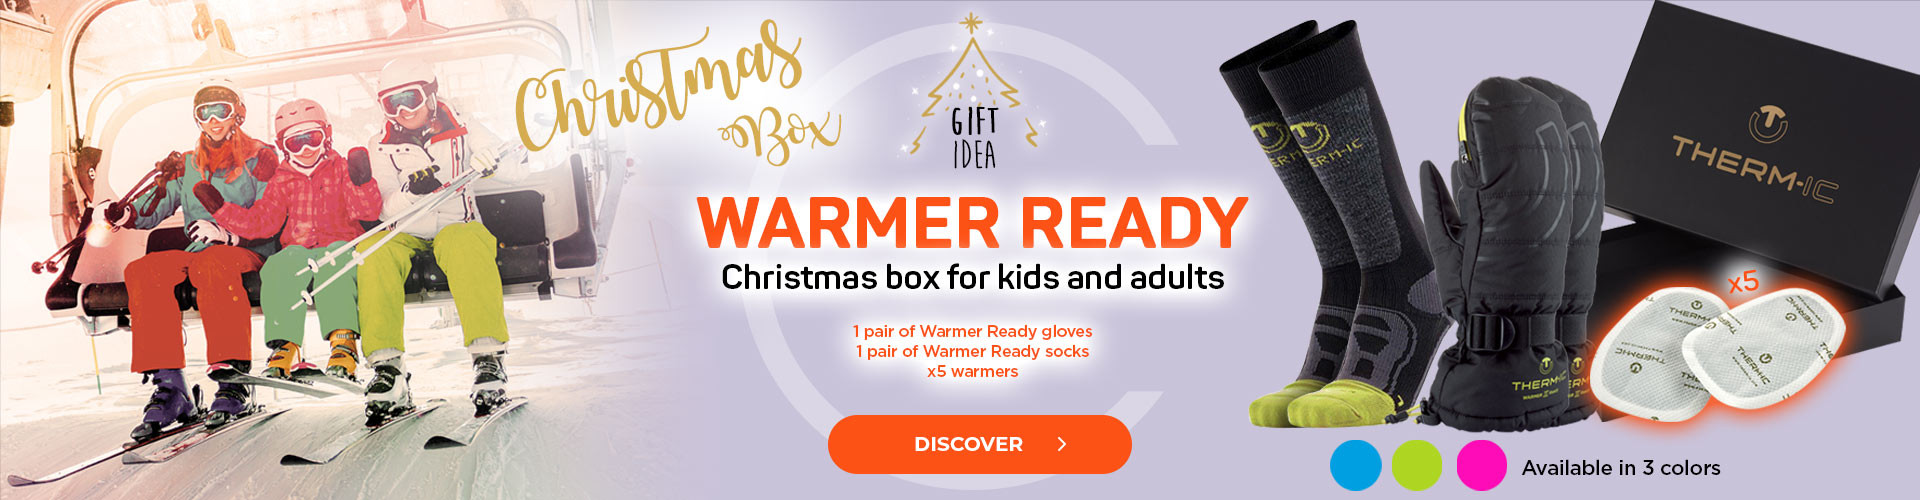 Christmas box Warmer Ready for kids or adults